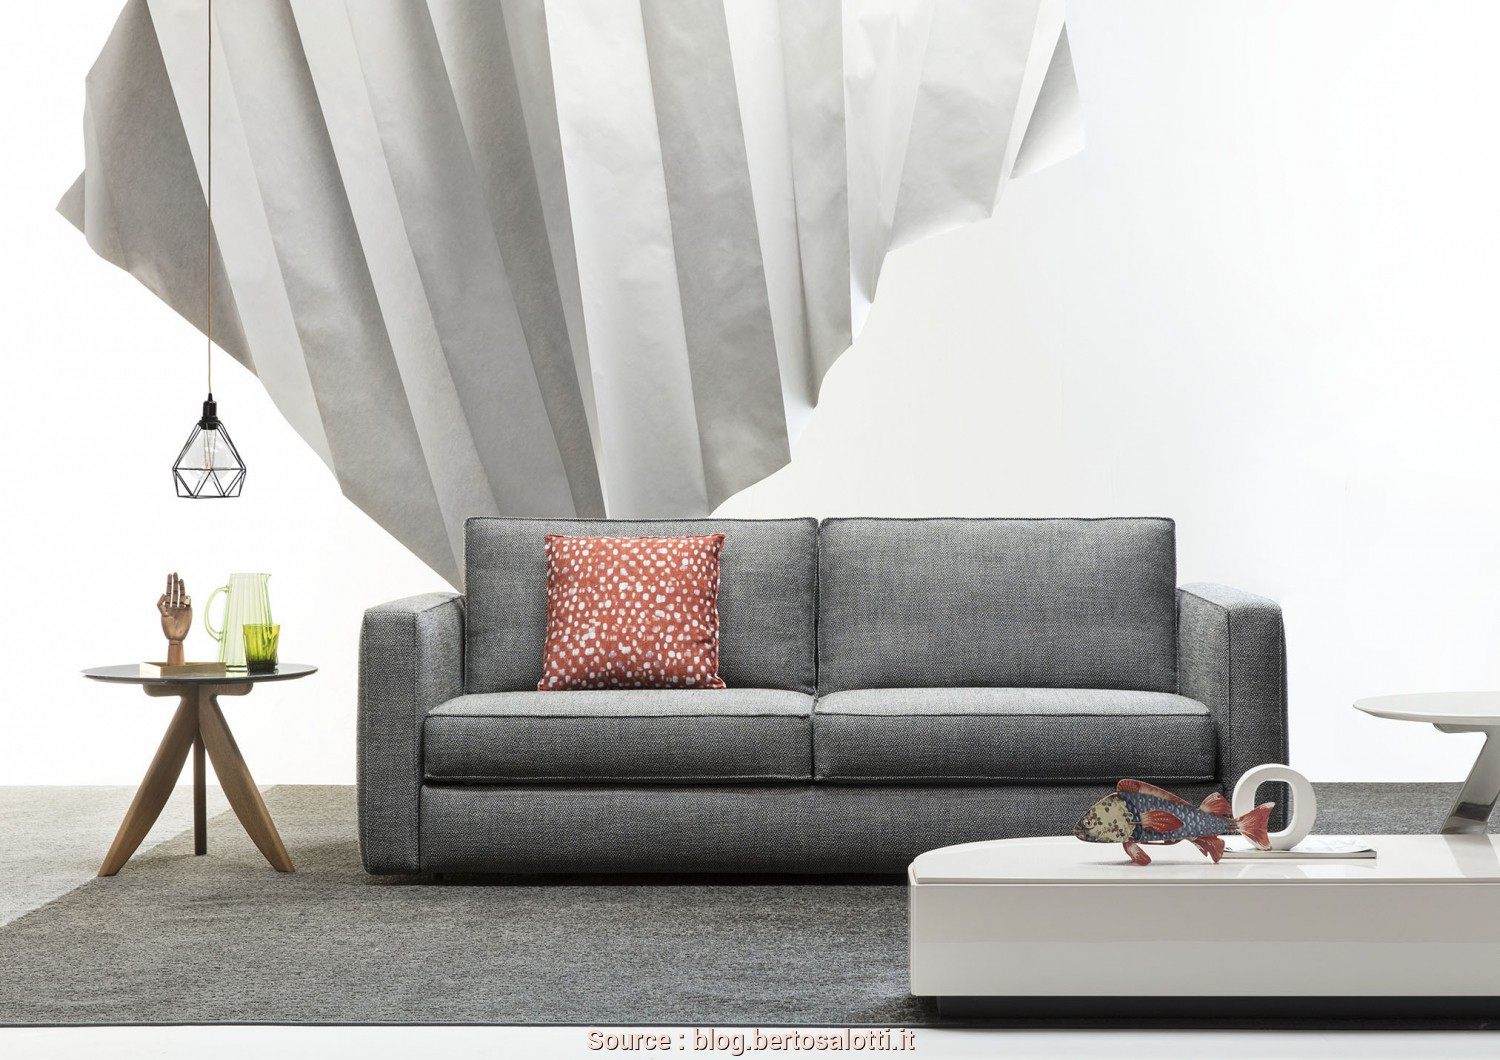 Divano Letto A Castello, Berto Salotti Prezzo, Grande Gulliver Sofa, Made By BertO, Furnish 7 Different Homes